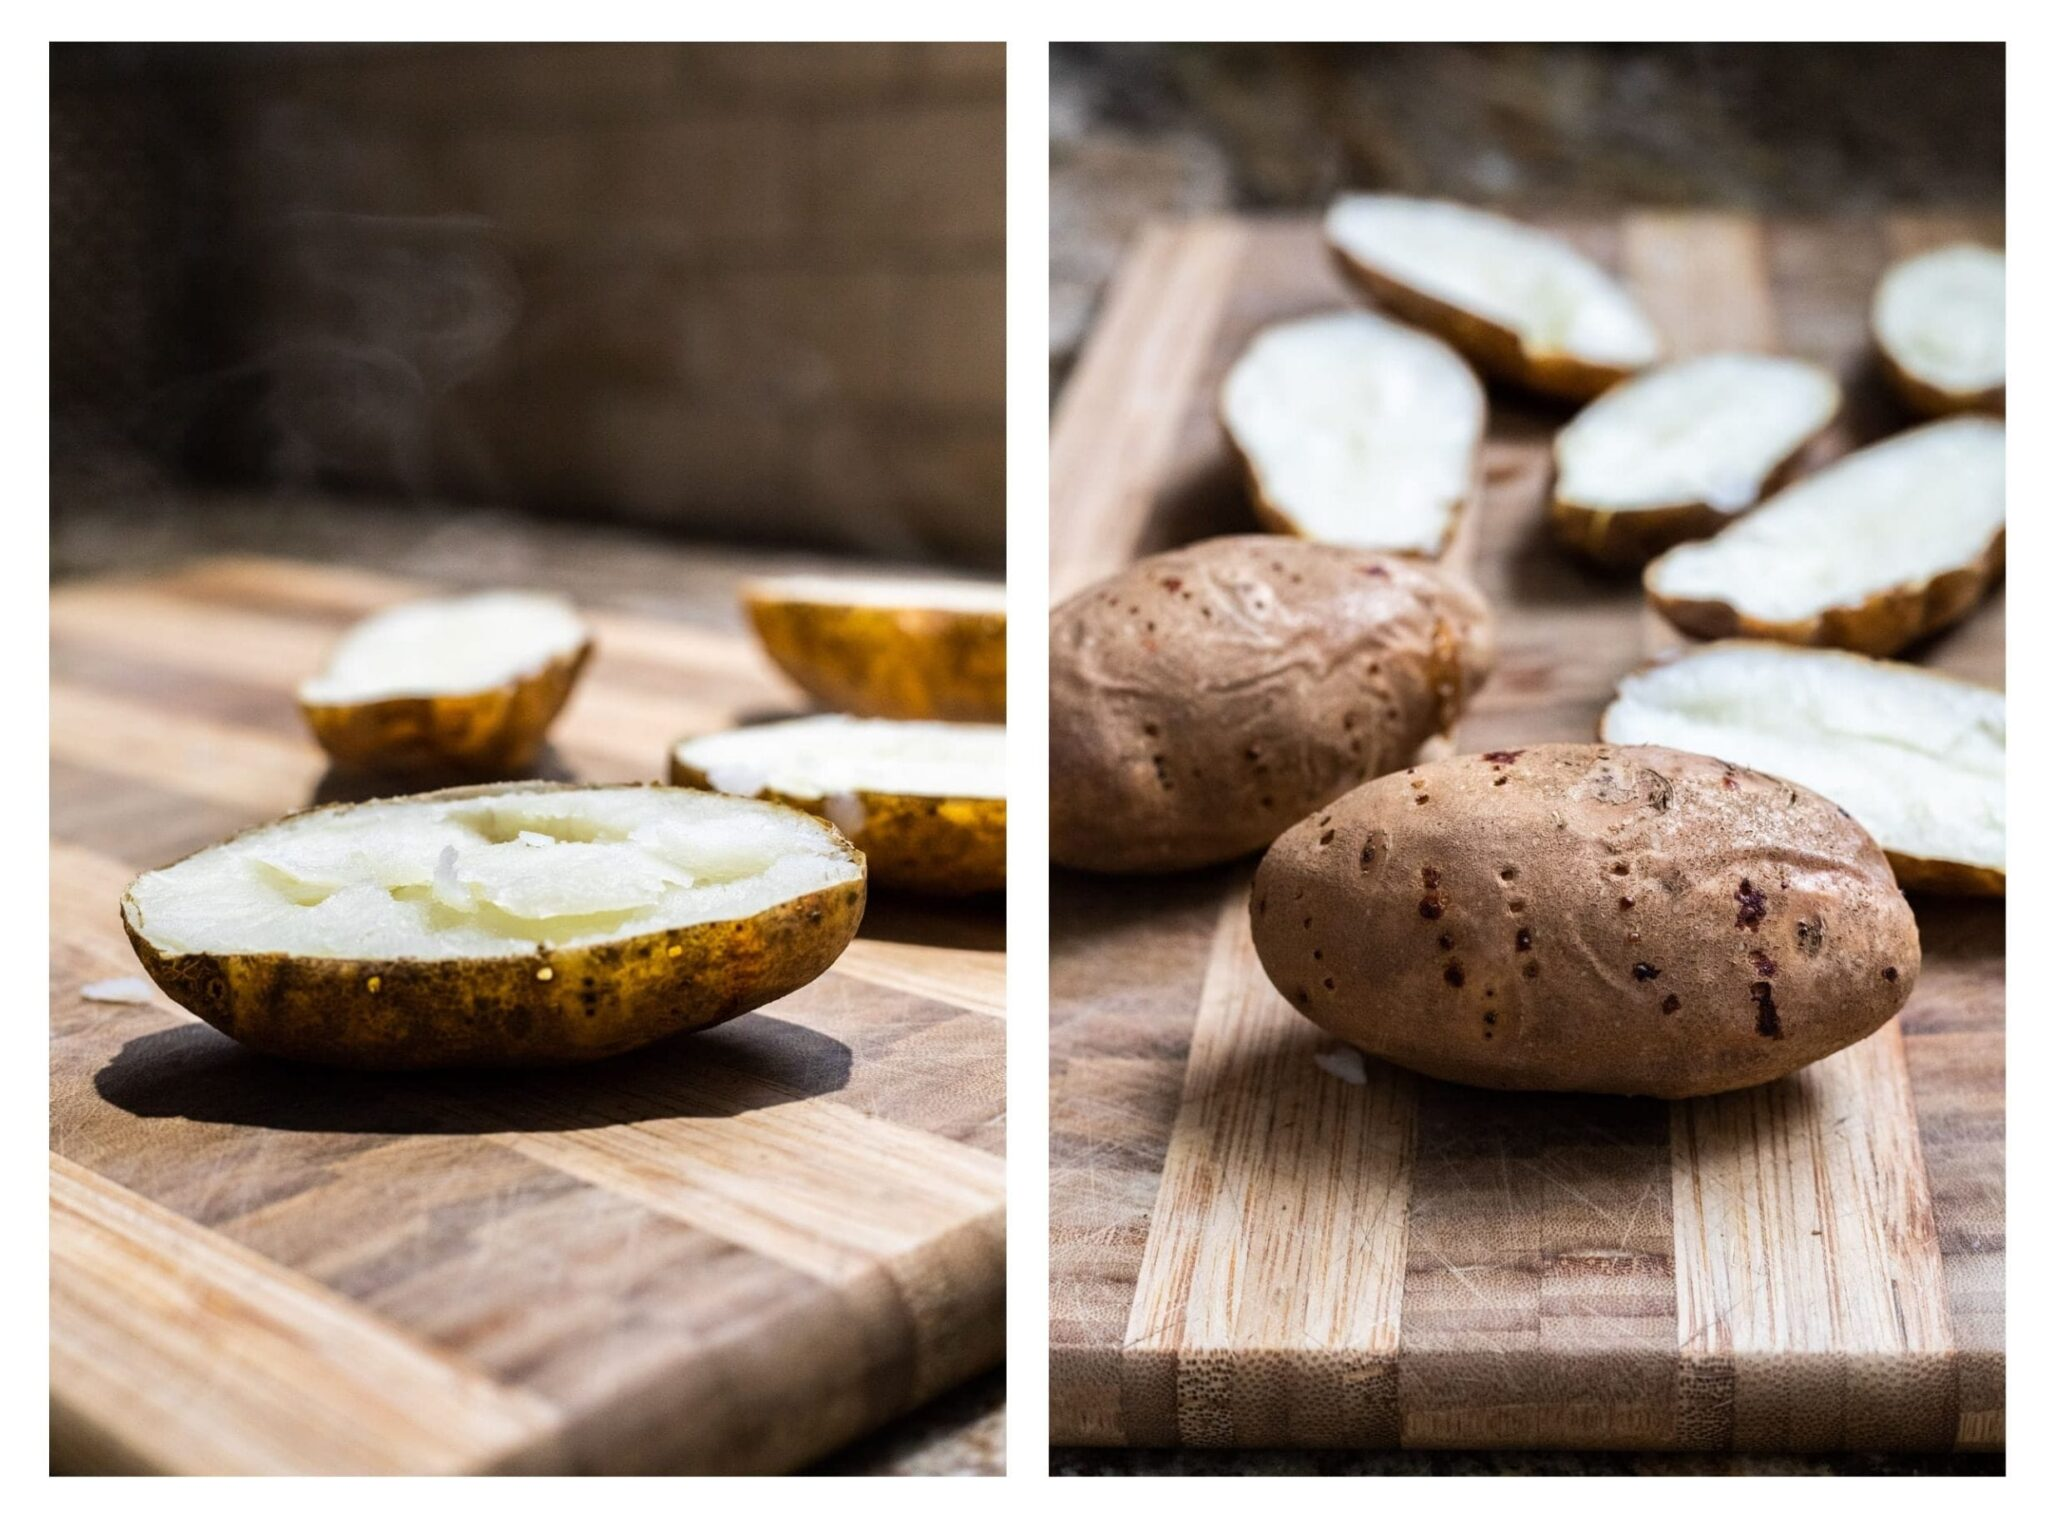 A photo collage of fork pierced baked potatoes and freshly halved baked potatoes.